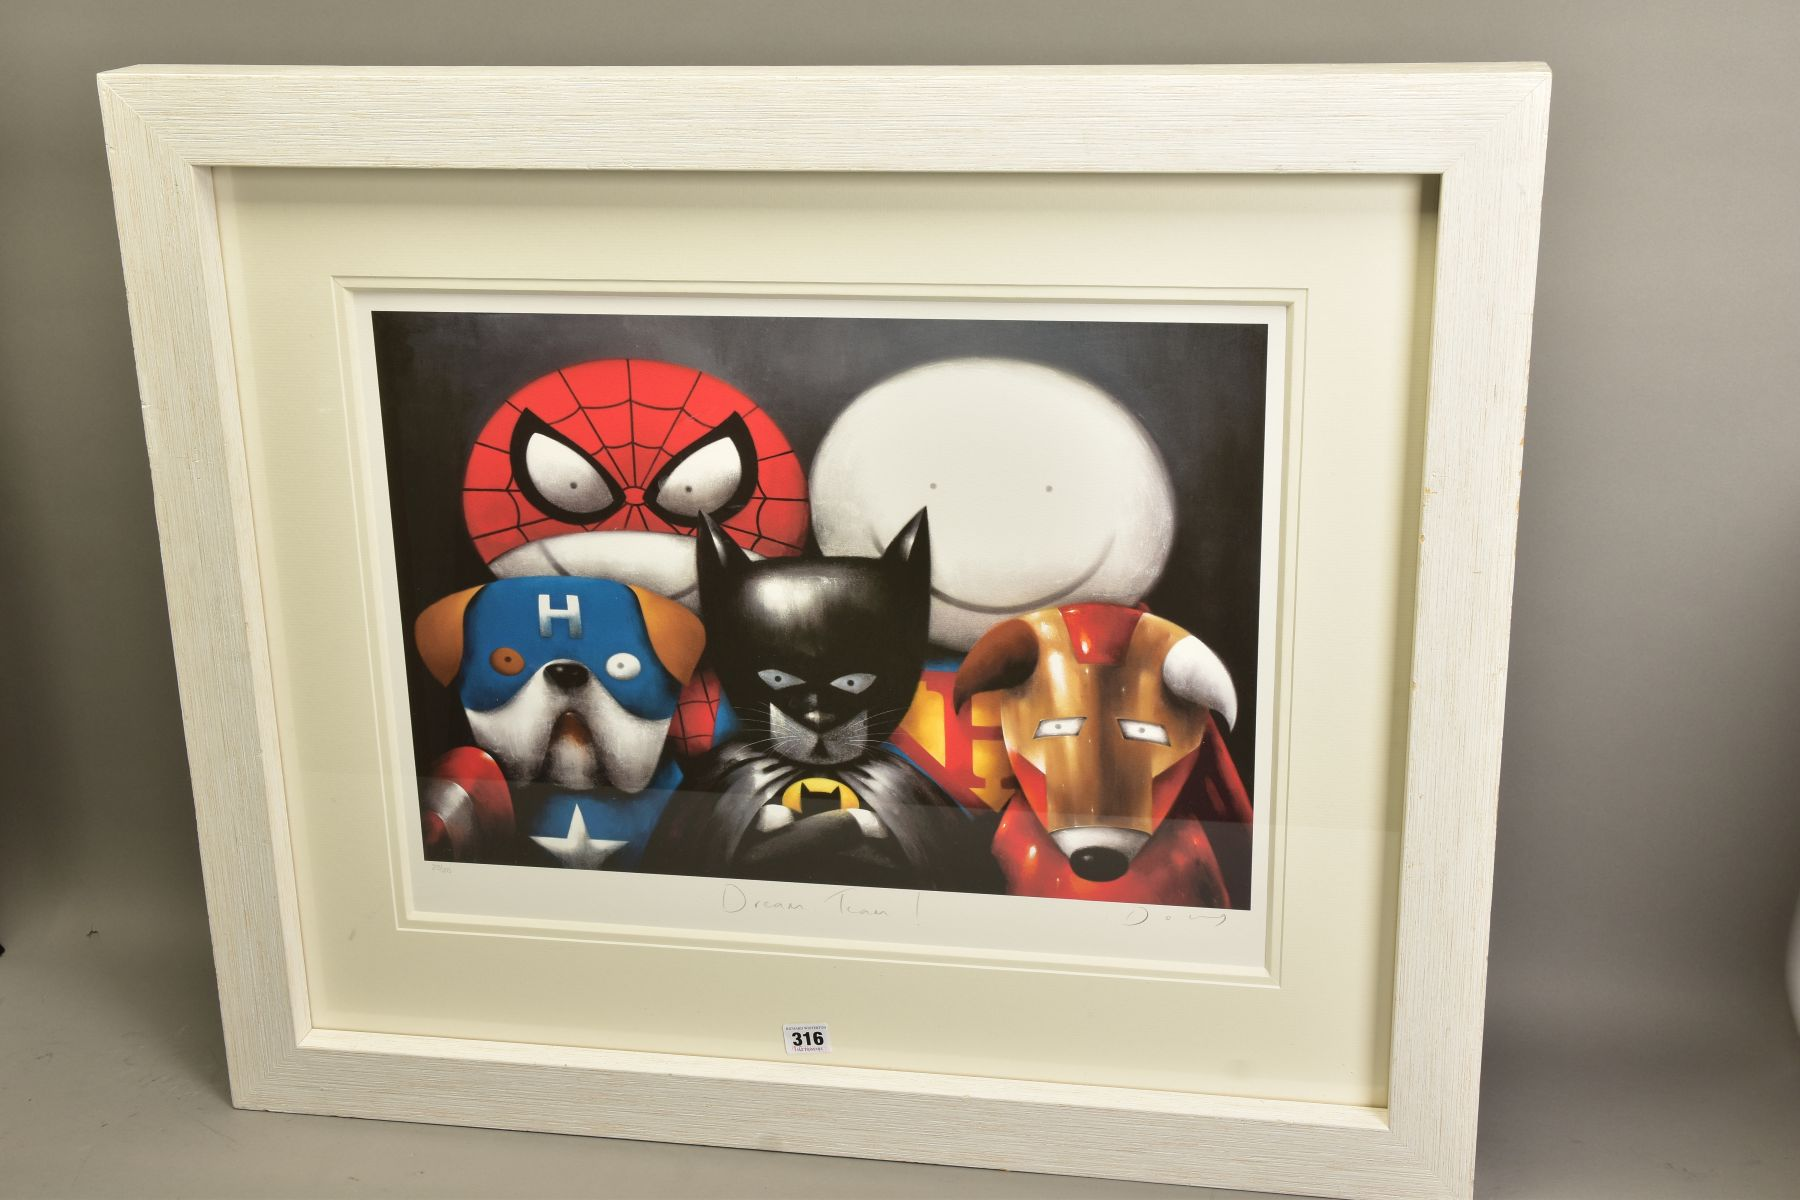 DOUG HYDE (BRITISH 1972) 'DREAM TEAM' a limited edition print of Superheroes in Disguise 213/295, - Image 3 of 6